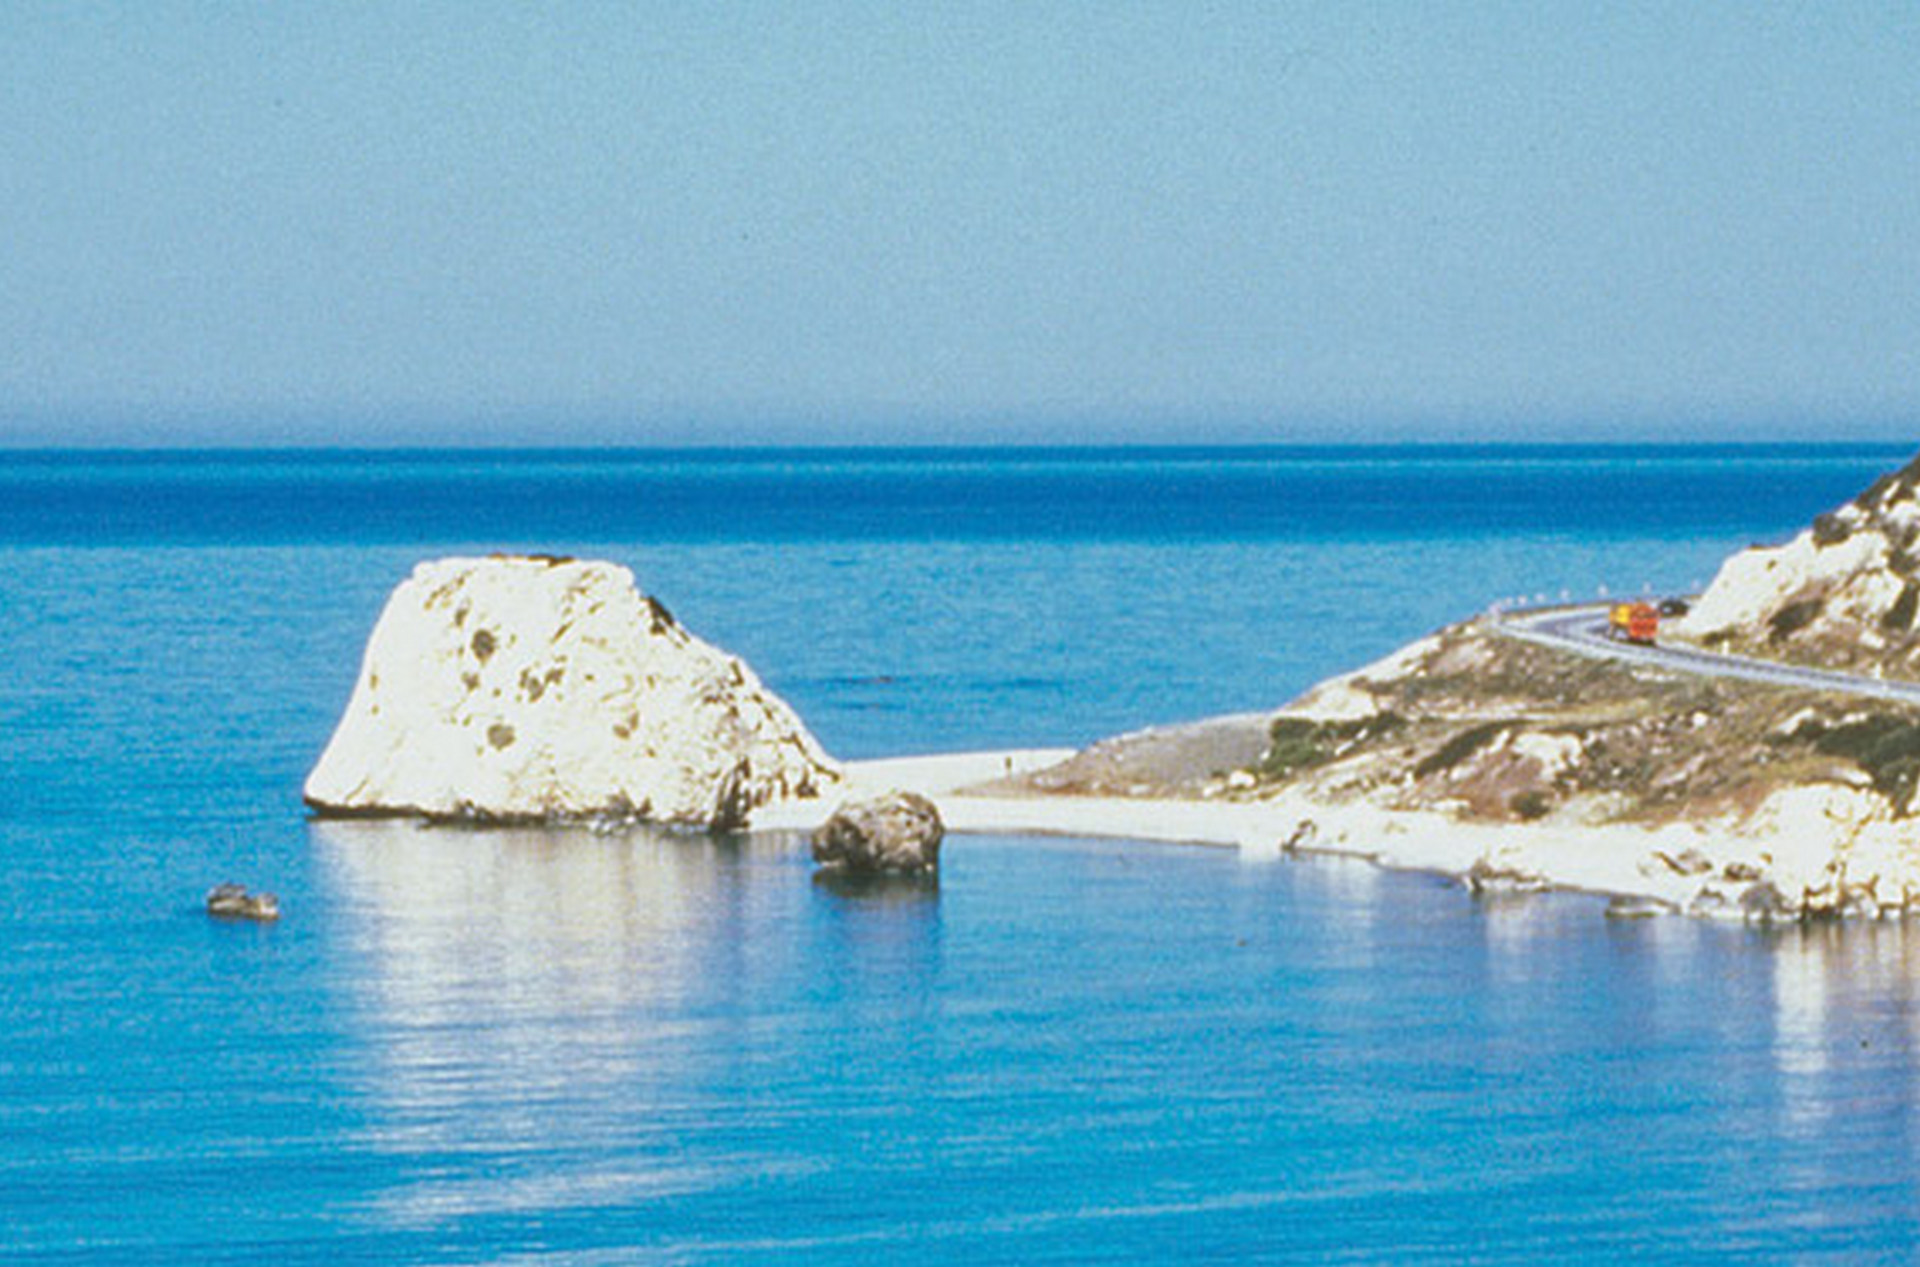 Paphos: The Birthplace of Aphrodite